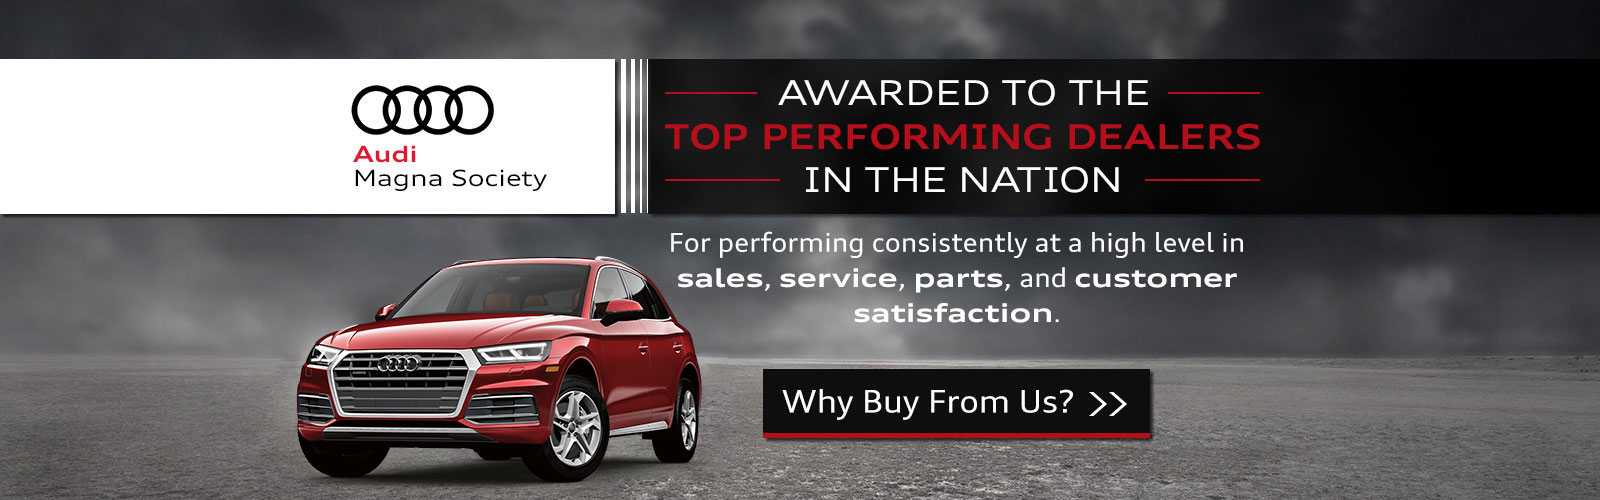 Audi North Orlando Audi Sales Service In Sanford FL - Audi dealers in south florida